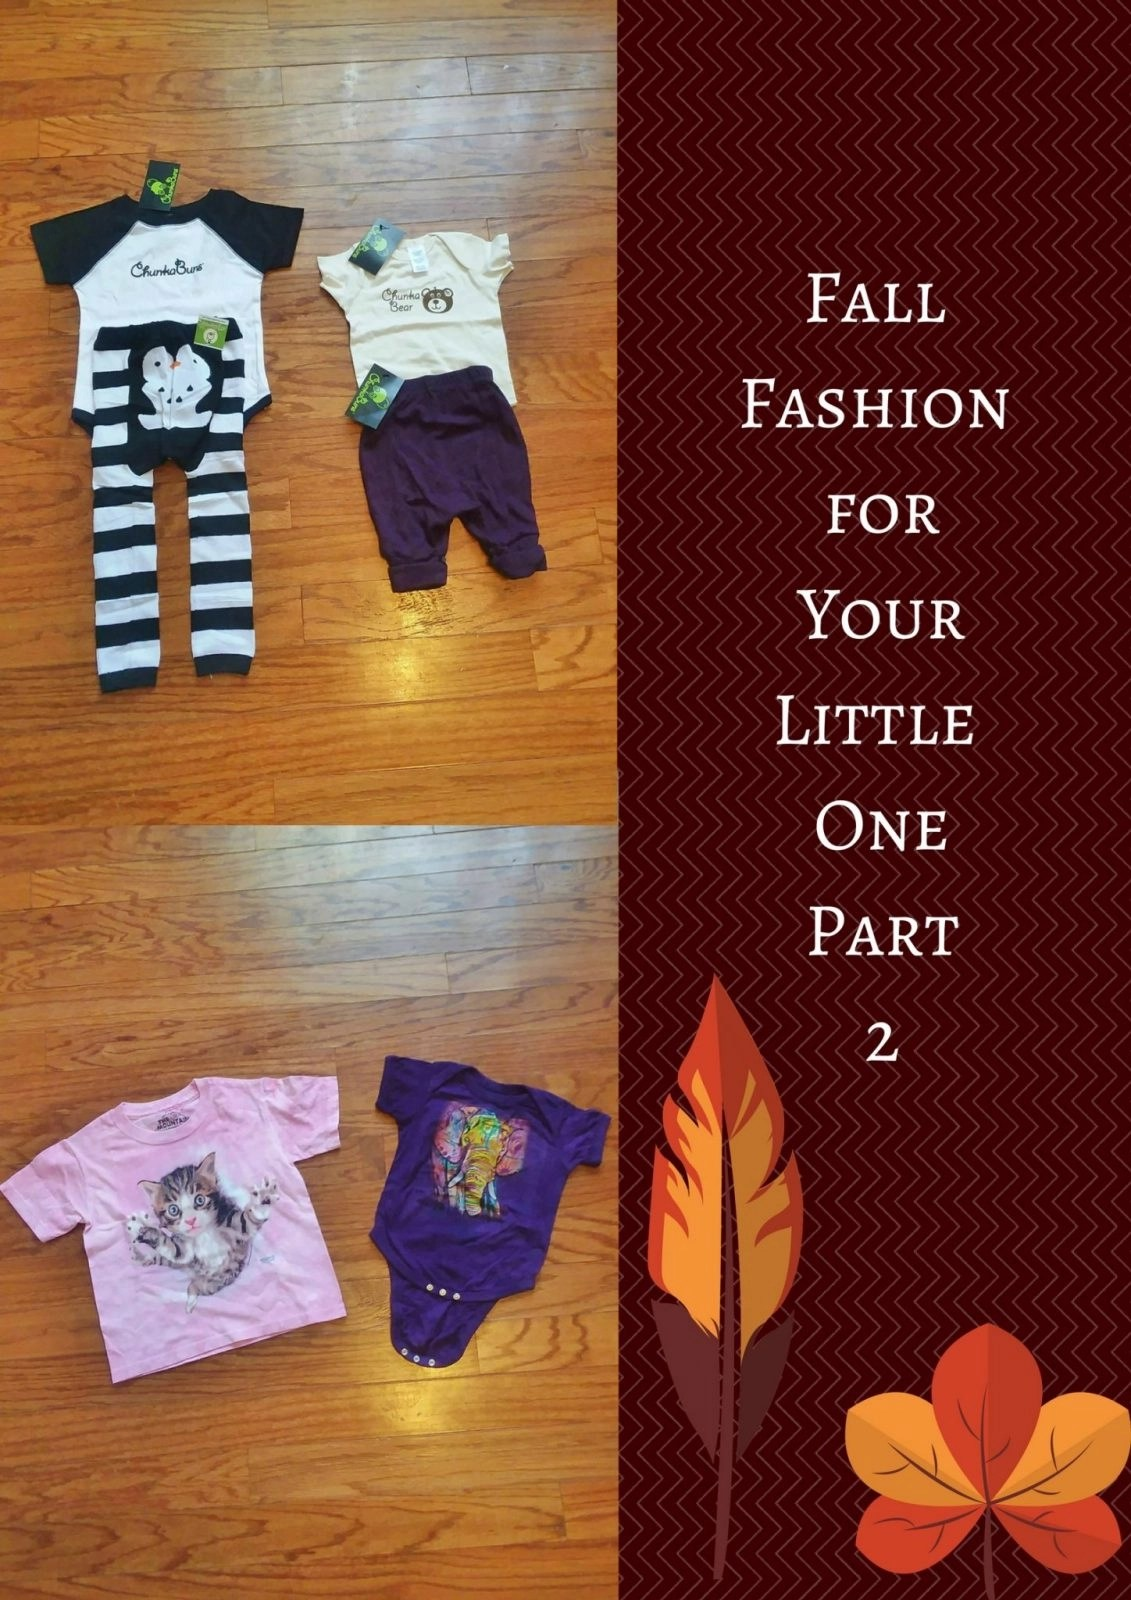 Fall Fashion for Your Little One Part 2